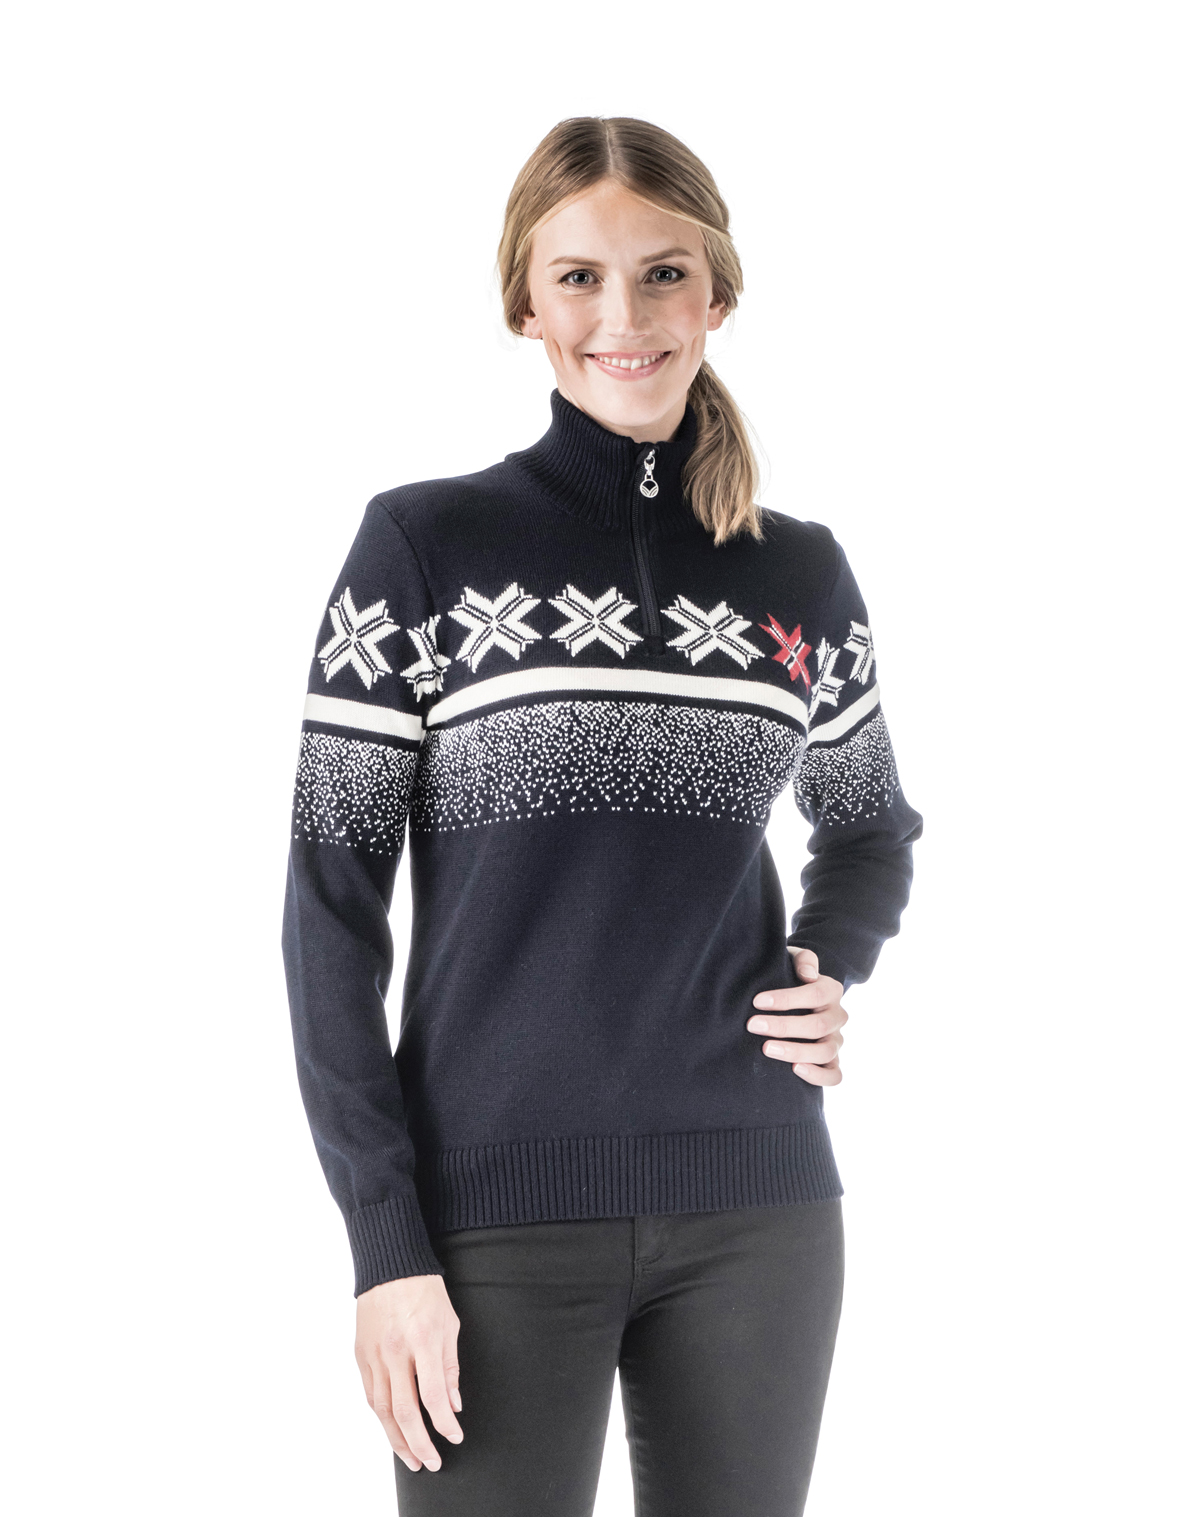 Olympic Passion women's sweater